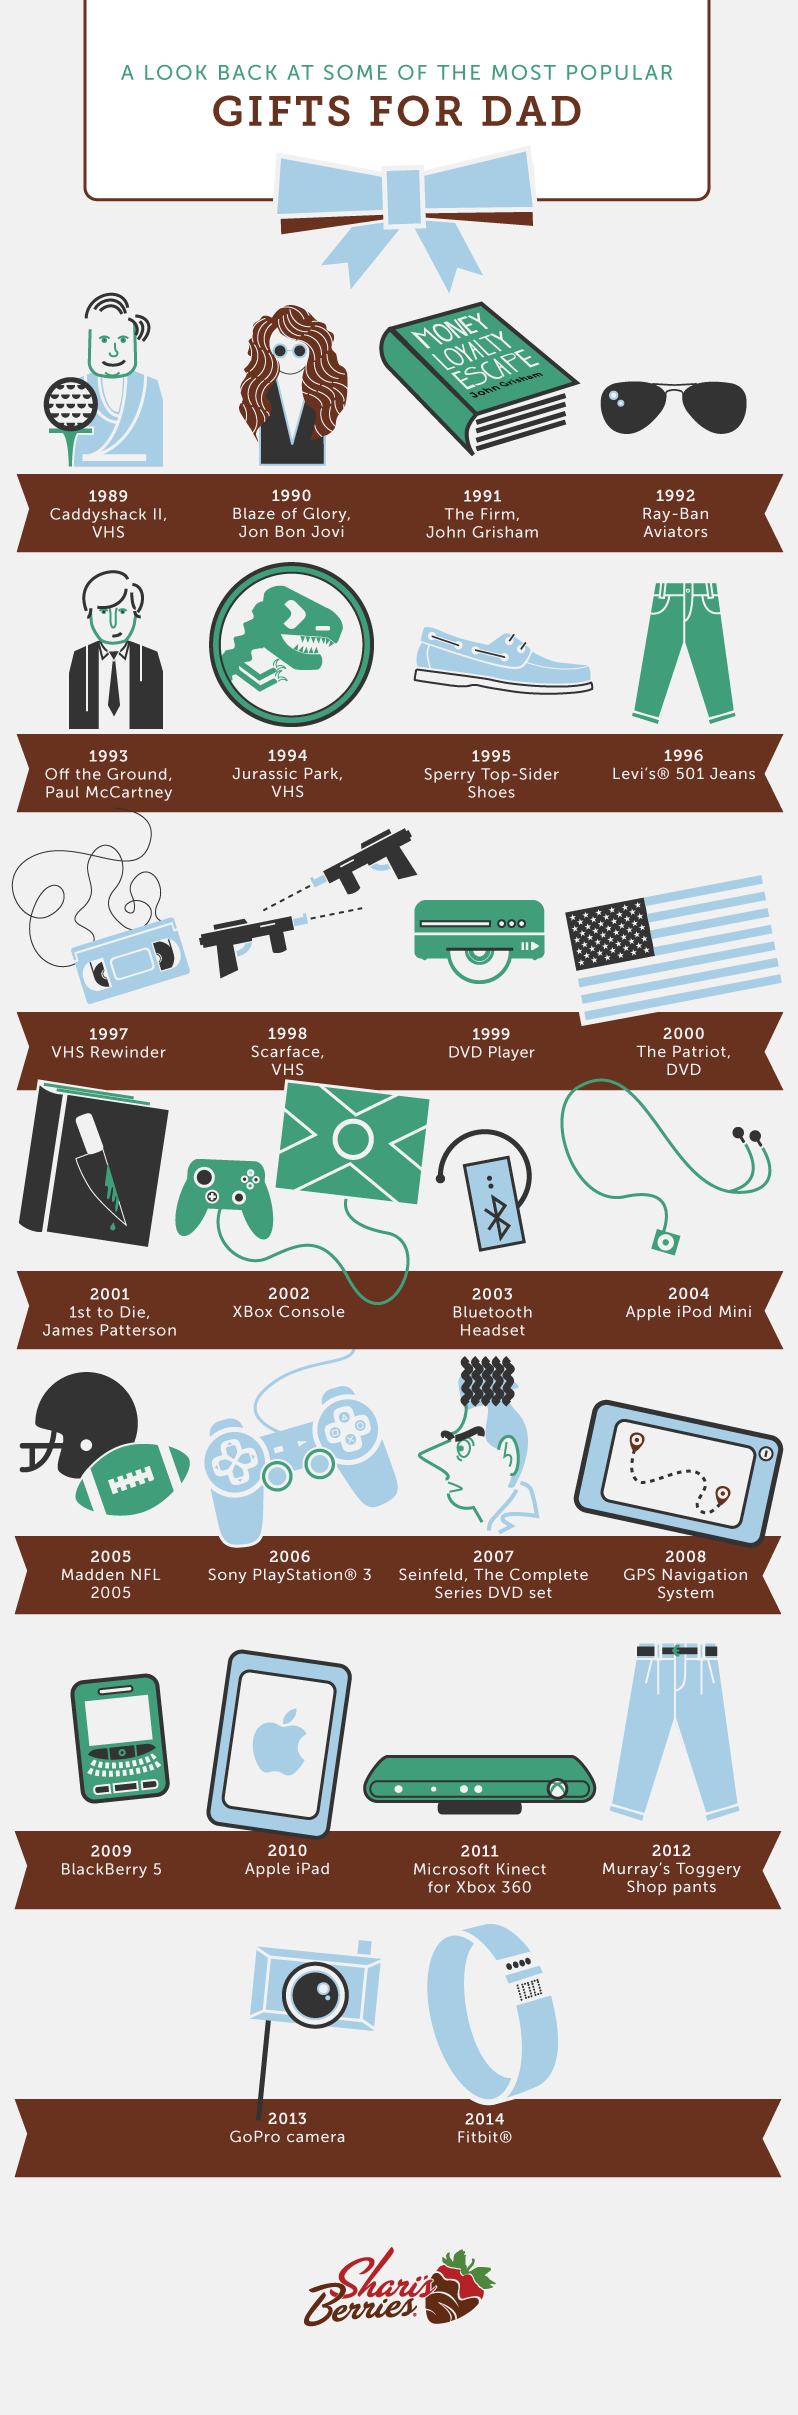 Popular Gifts For Dad In The Last 25 Years - Infographic by Berries.com